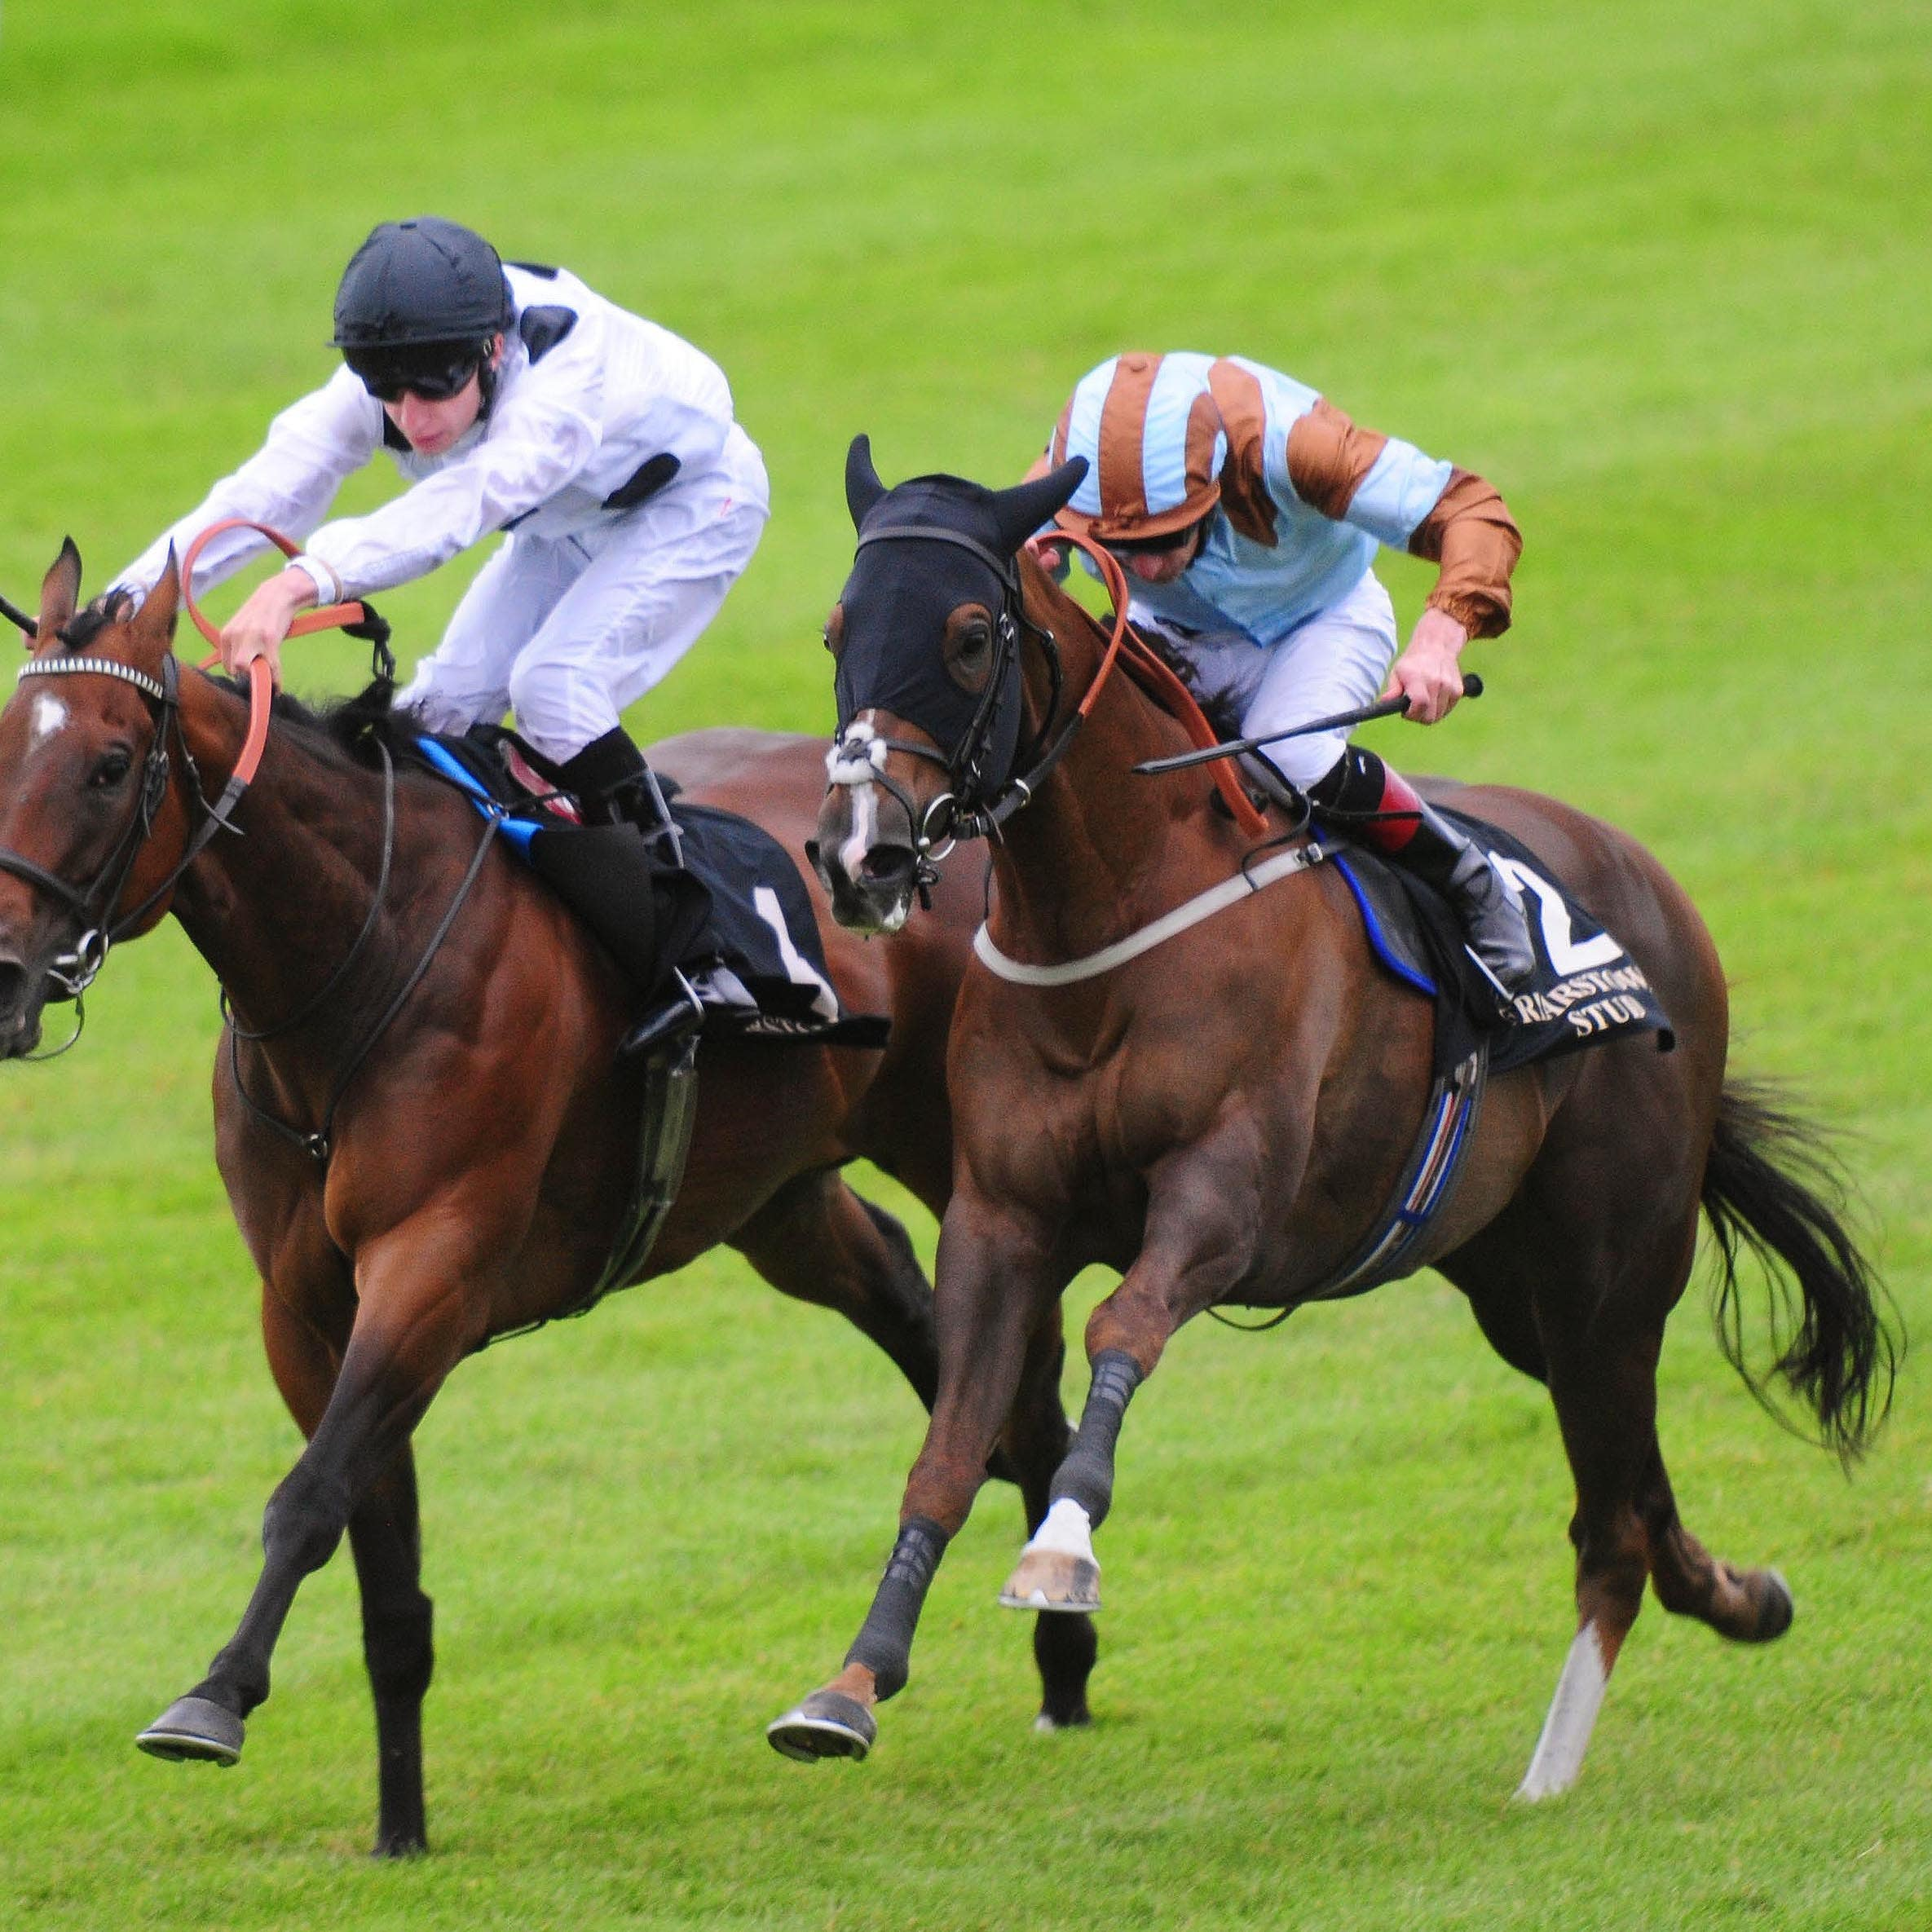 Caspian Prince (right) won the Friarstown Stud Sapphire Stakes in 2017